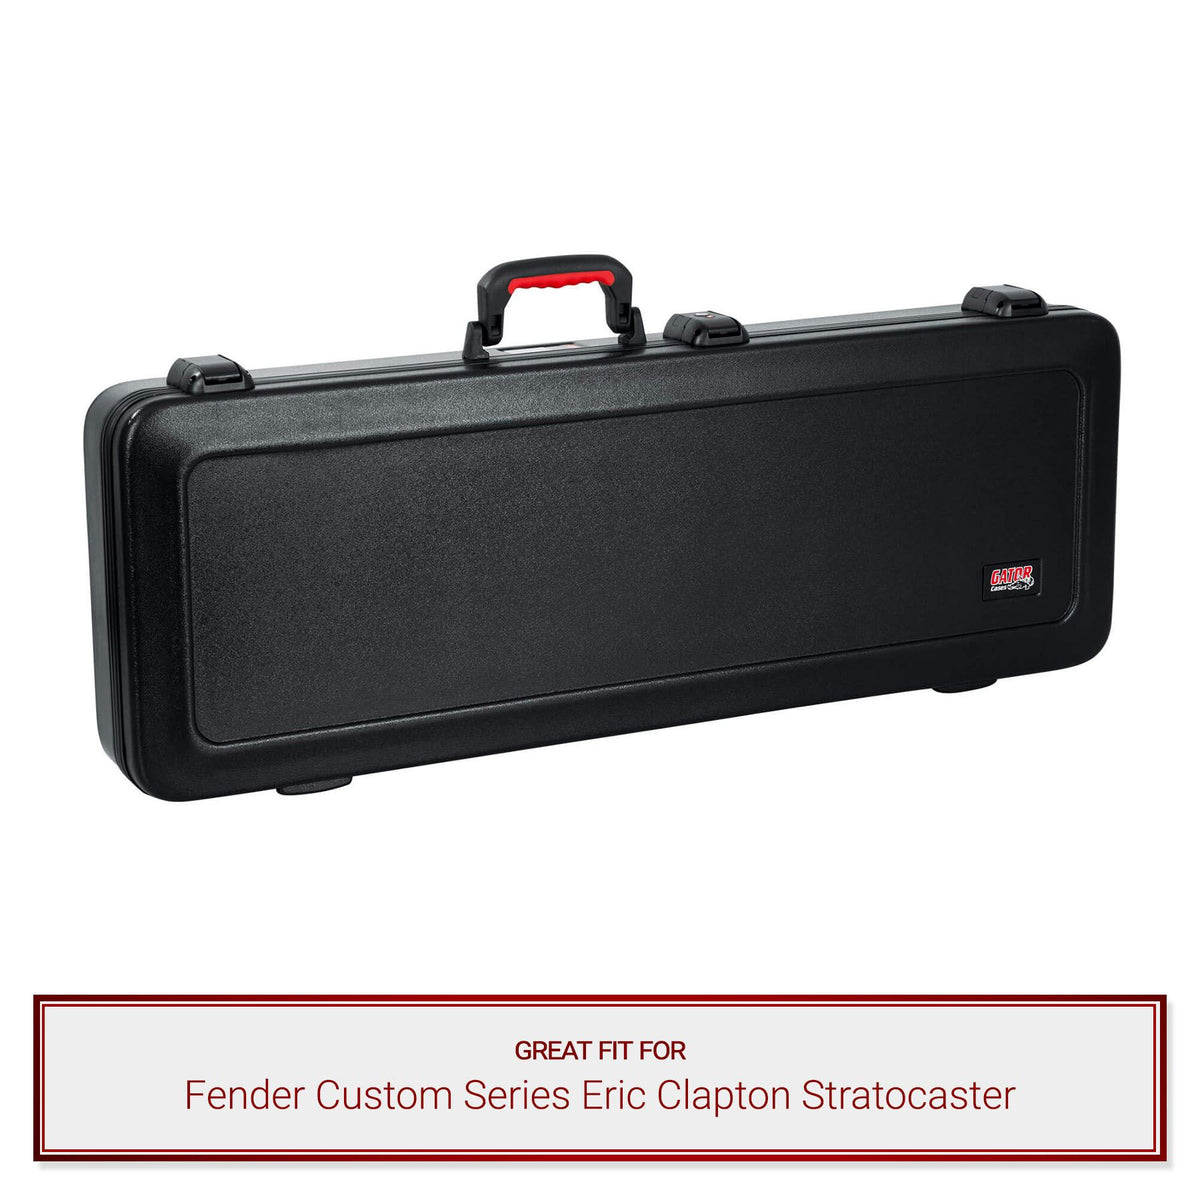 Gator TSA Electric Case fits Fender Custom Series Eric Clapton Stratocaster